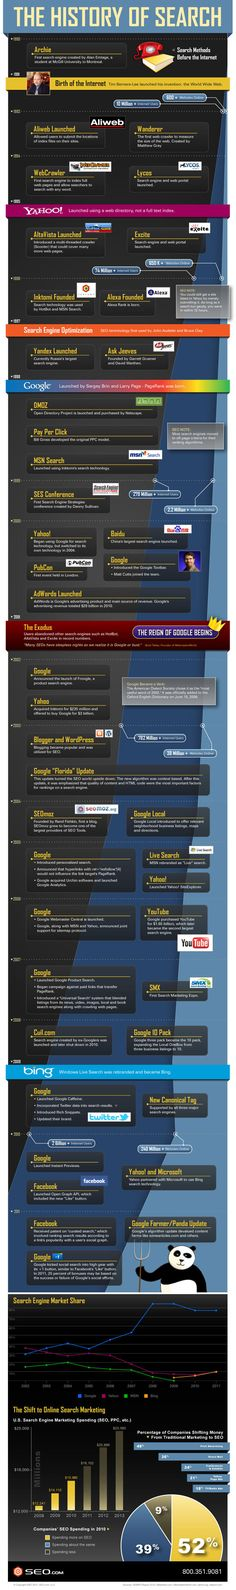 The history of search engines Infographic